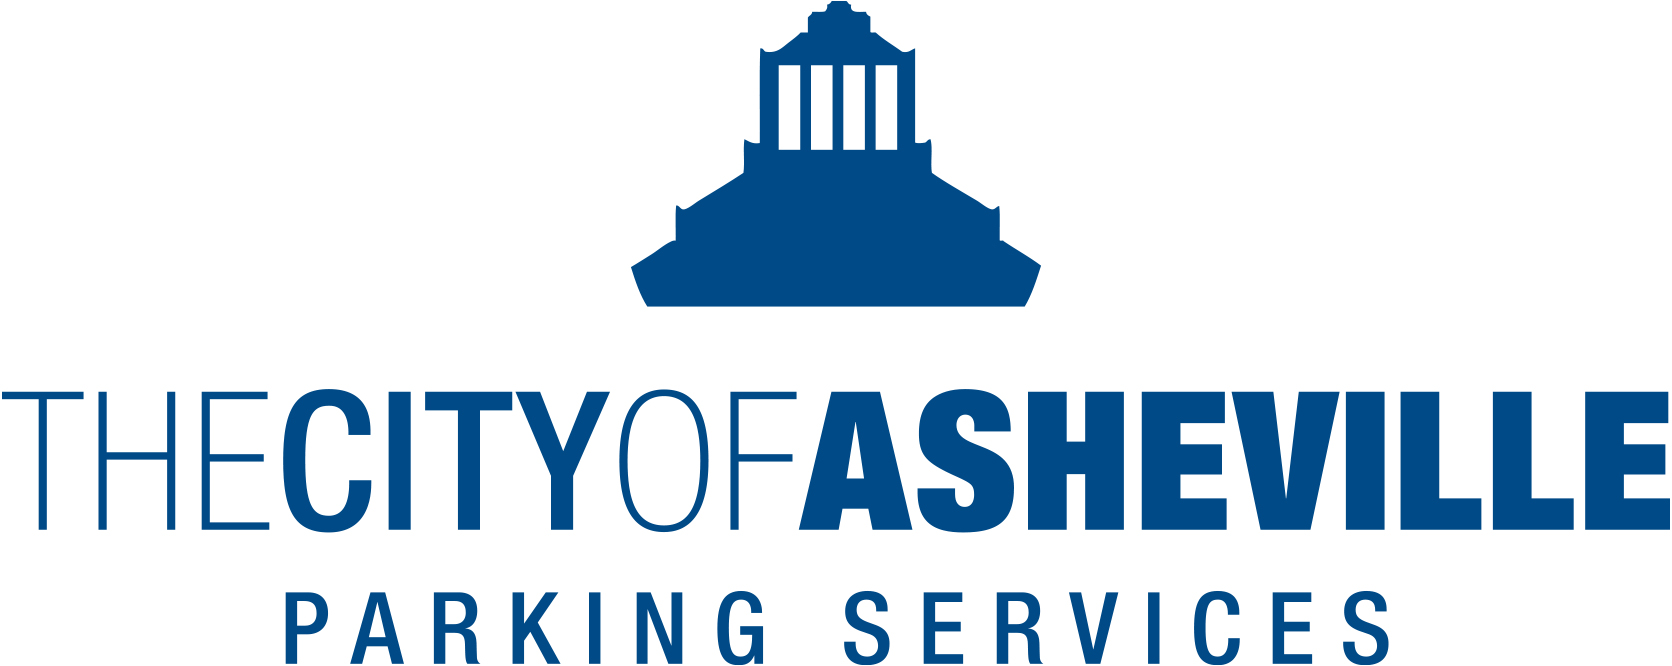 City of Asheville Parking Services Division